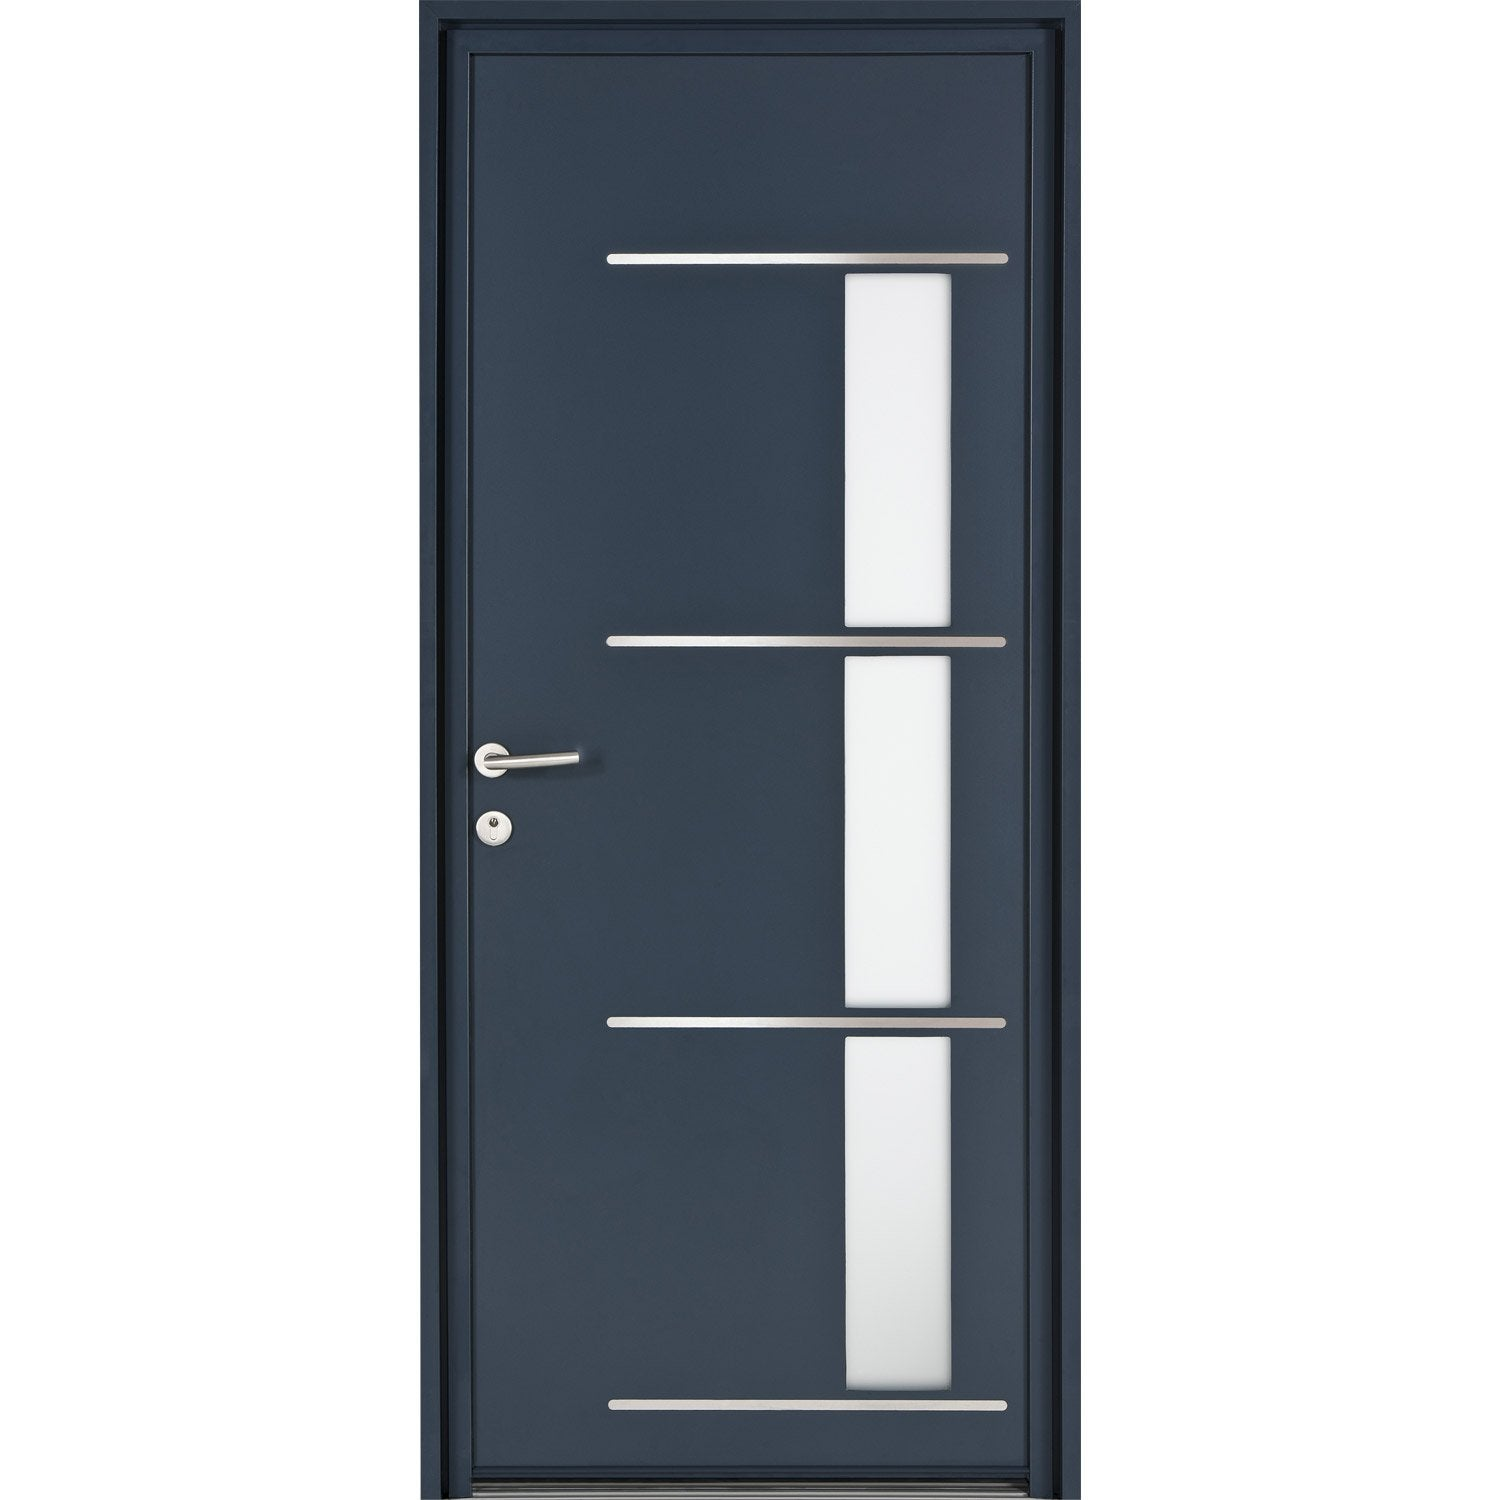 Porte d 39 entr e sur mesure en aluminium matara excellence for Porte d entree rouge basque